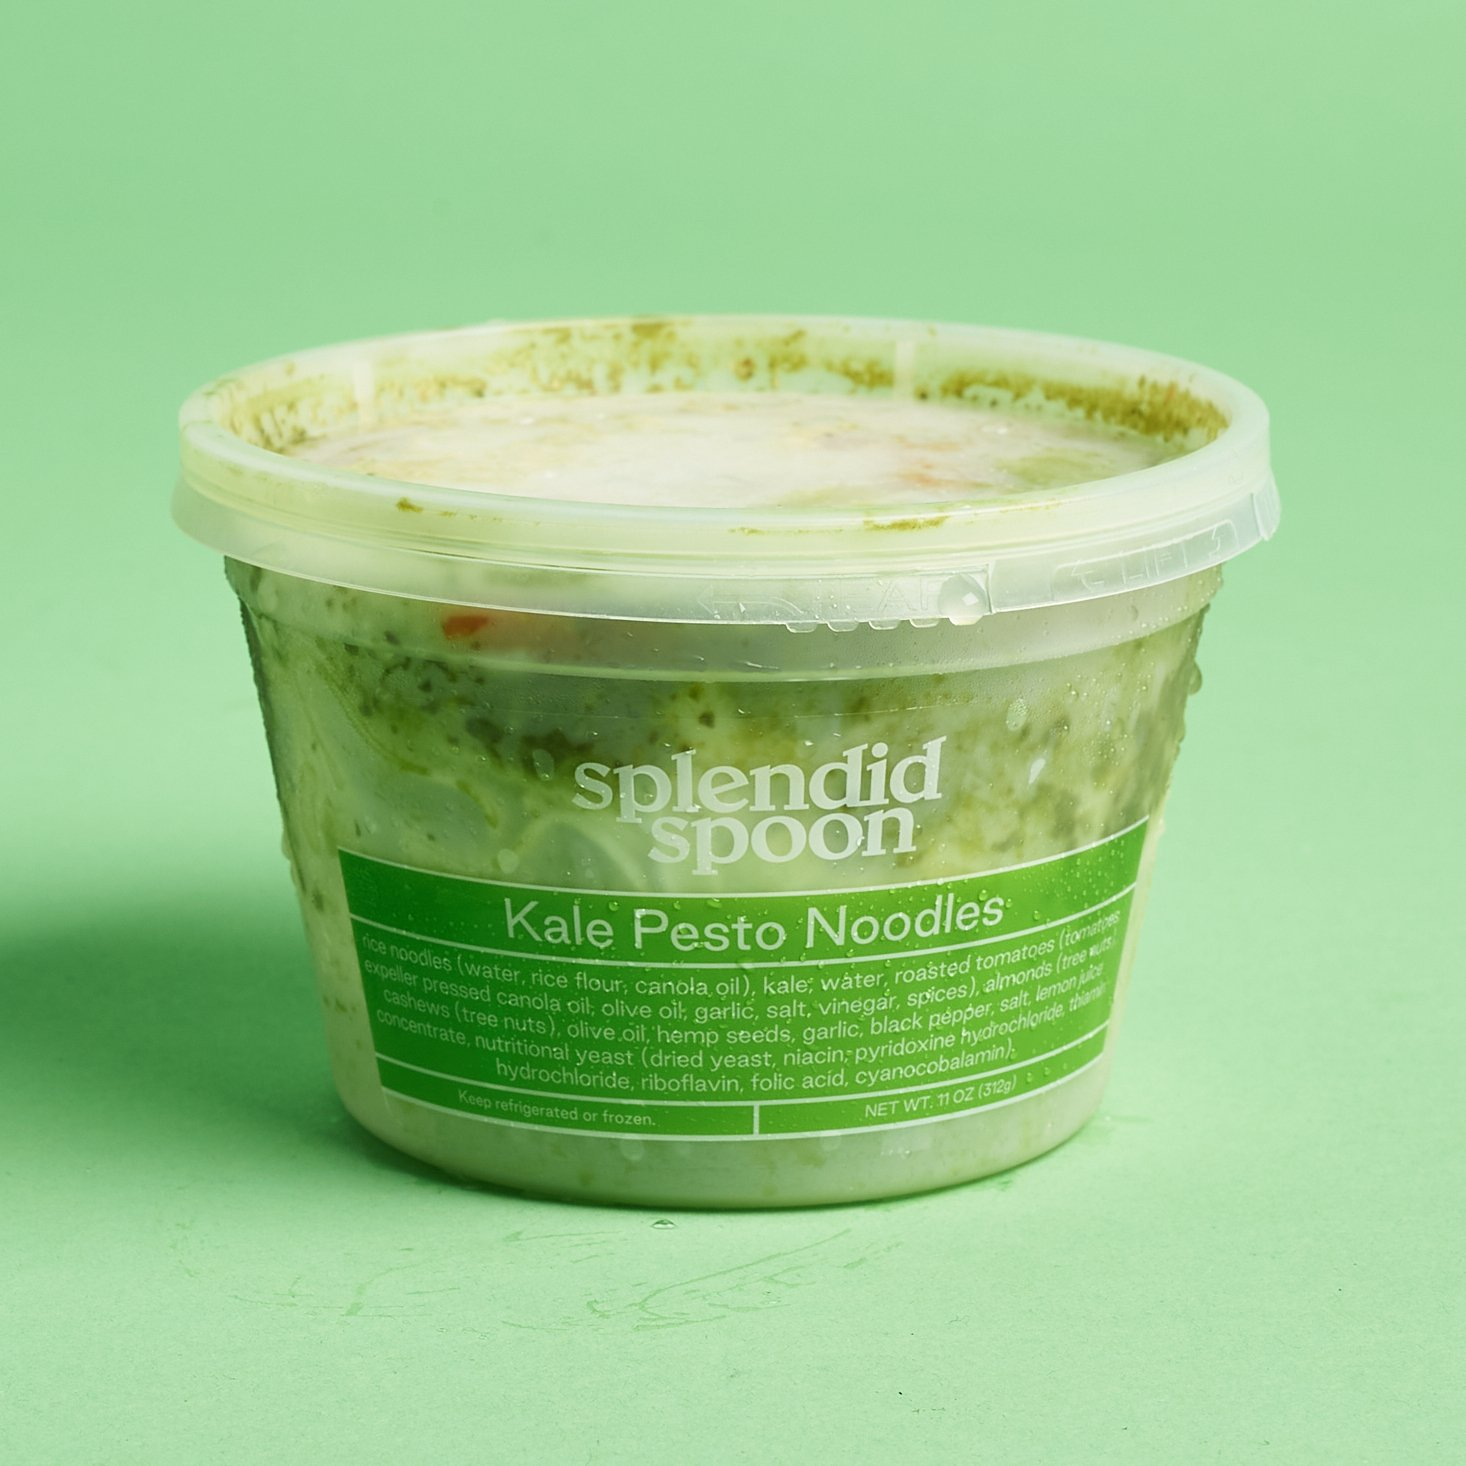 Splendid Spoon August 2020 kale pesto noodles